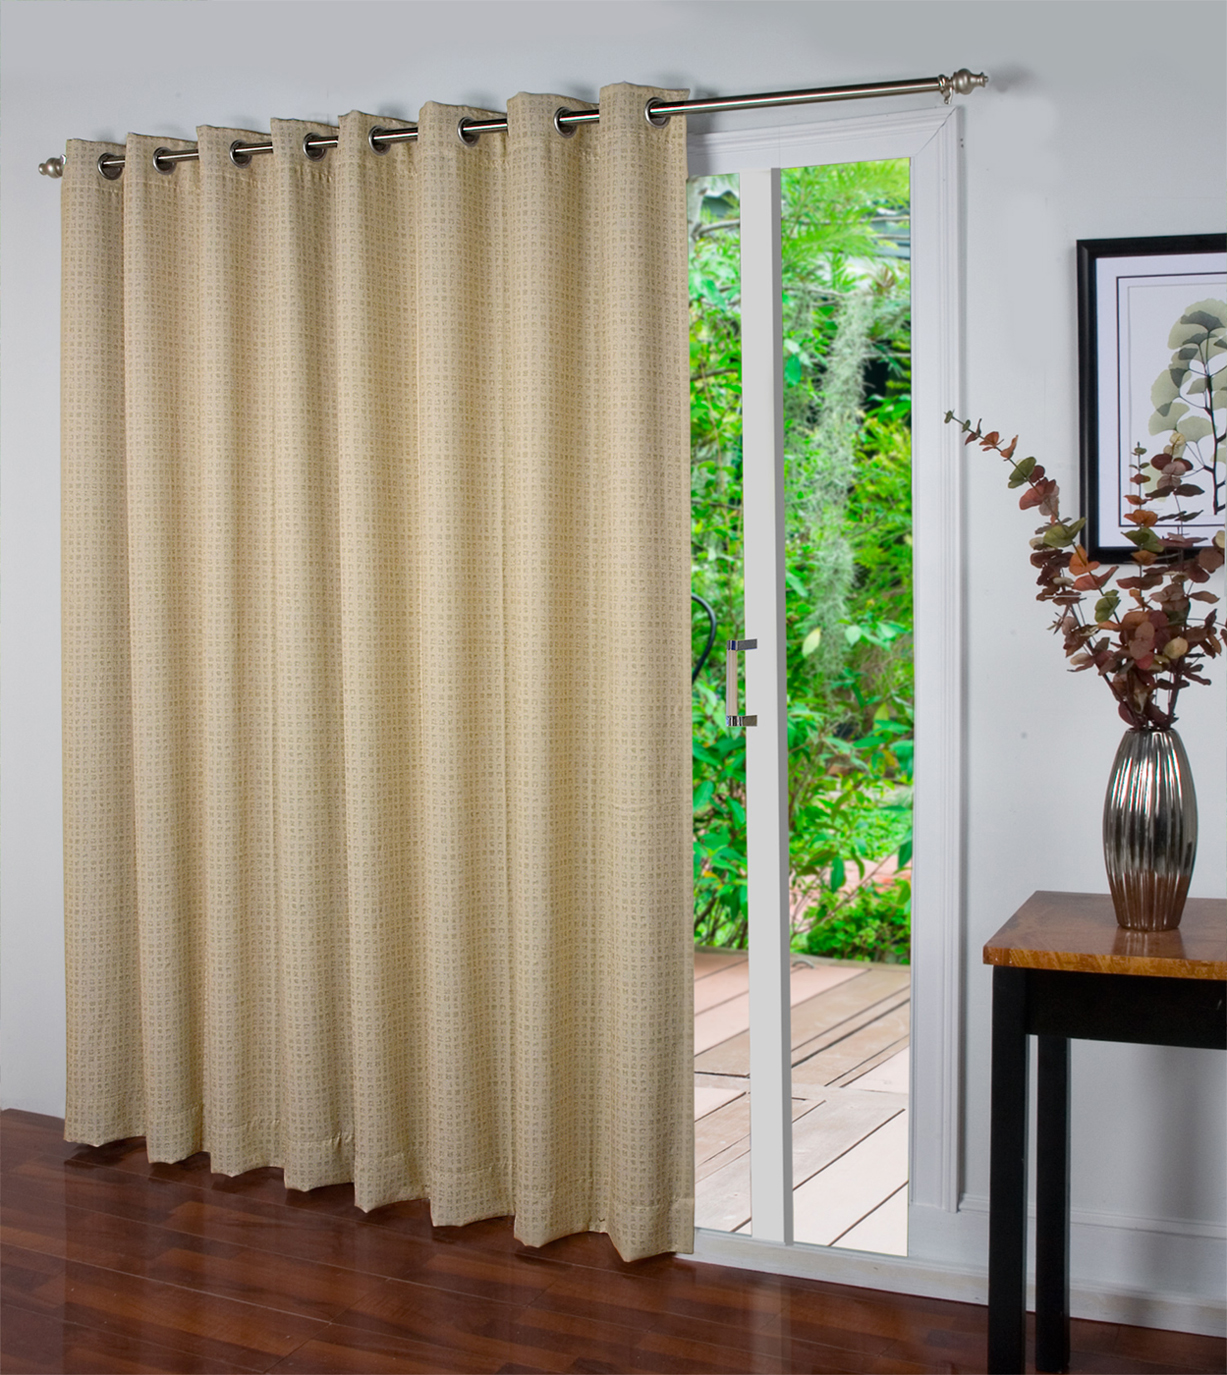 unique makeover outdoor cloth with for curtainpic of sourcecurtainpic drop diy drapes site curtains source patio cabana from